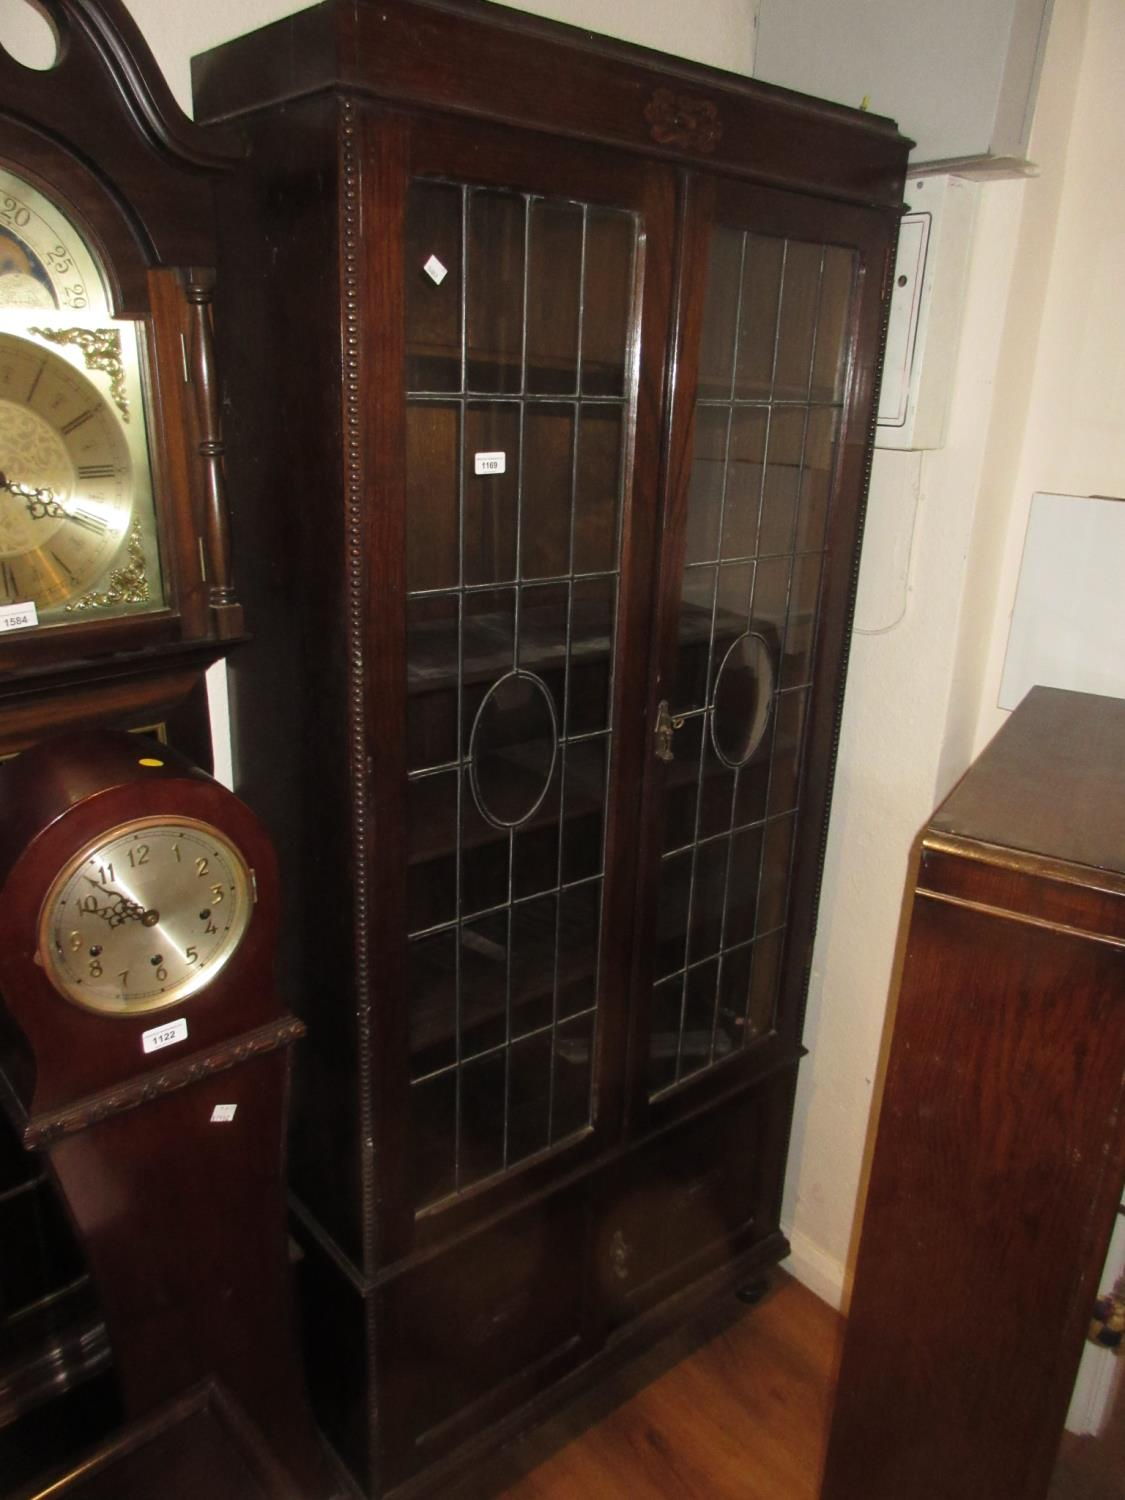 Mid 20th Century oak display cabinet having two leaded glazed doors with adjustable shelves above